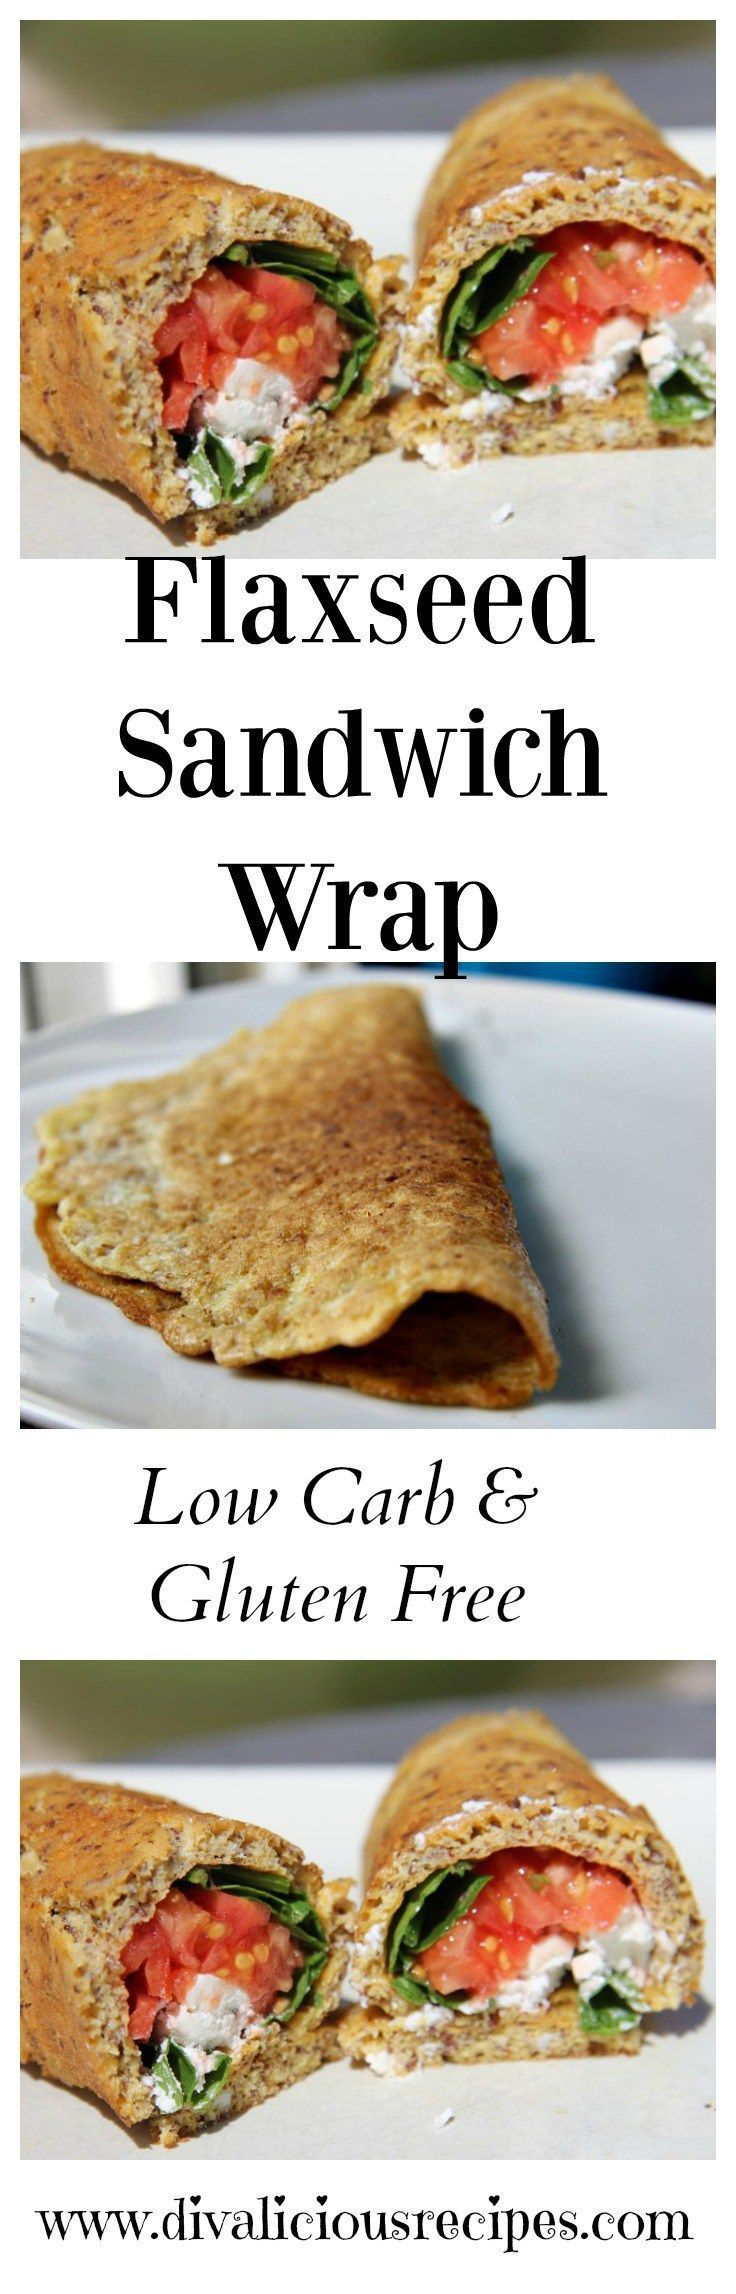 A low carb and gluten free sandwich wrap made from flaxseed flour. A healthy option for lunch too. Fill with low carb options. Recipe: http://divaliciousrecipes.com/2012/03/07/sandwich-wrap-low-carb-g (Gluten Free Recipes For Diabetics)